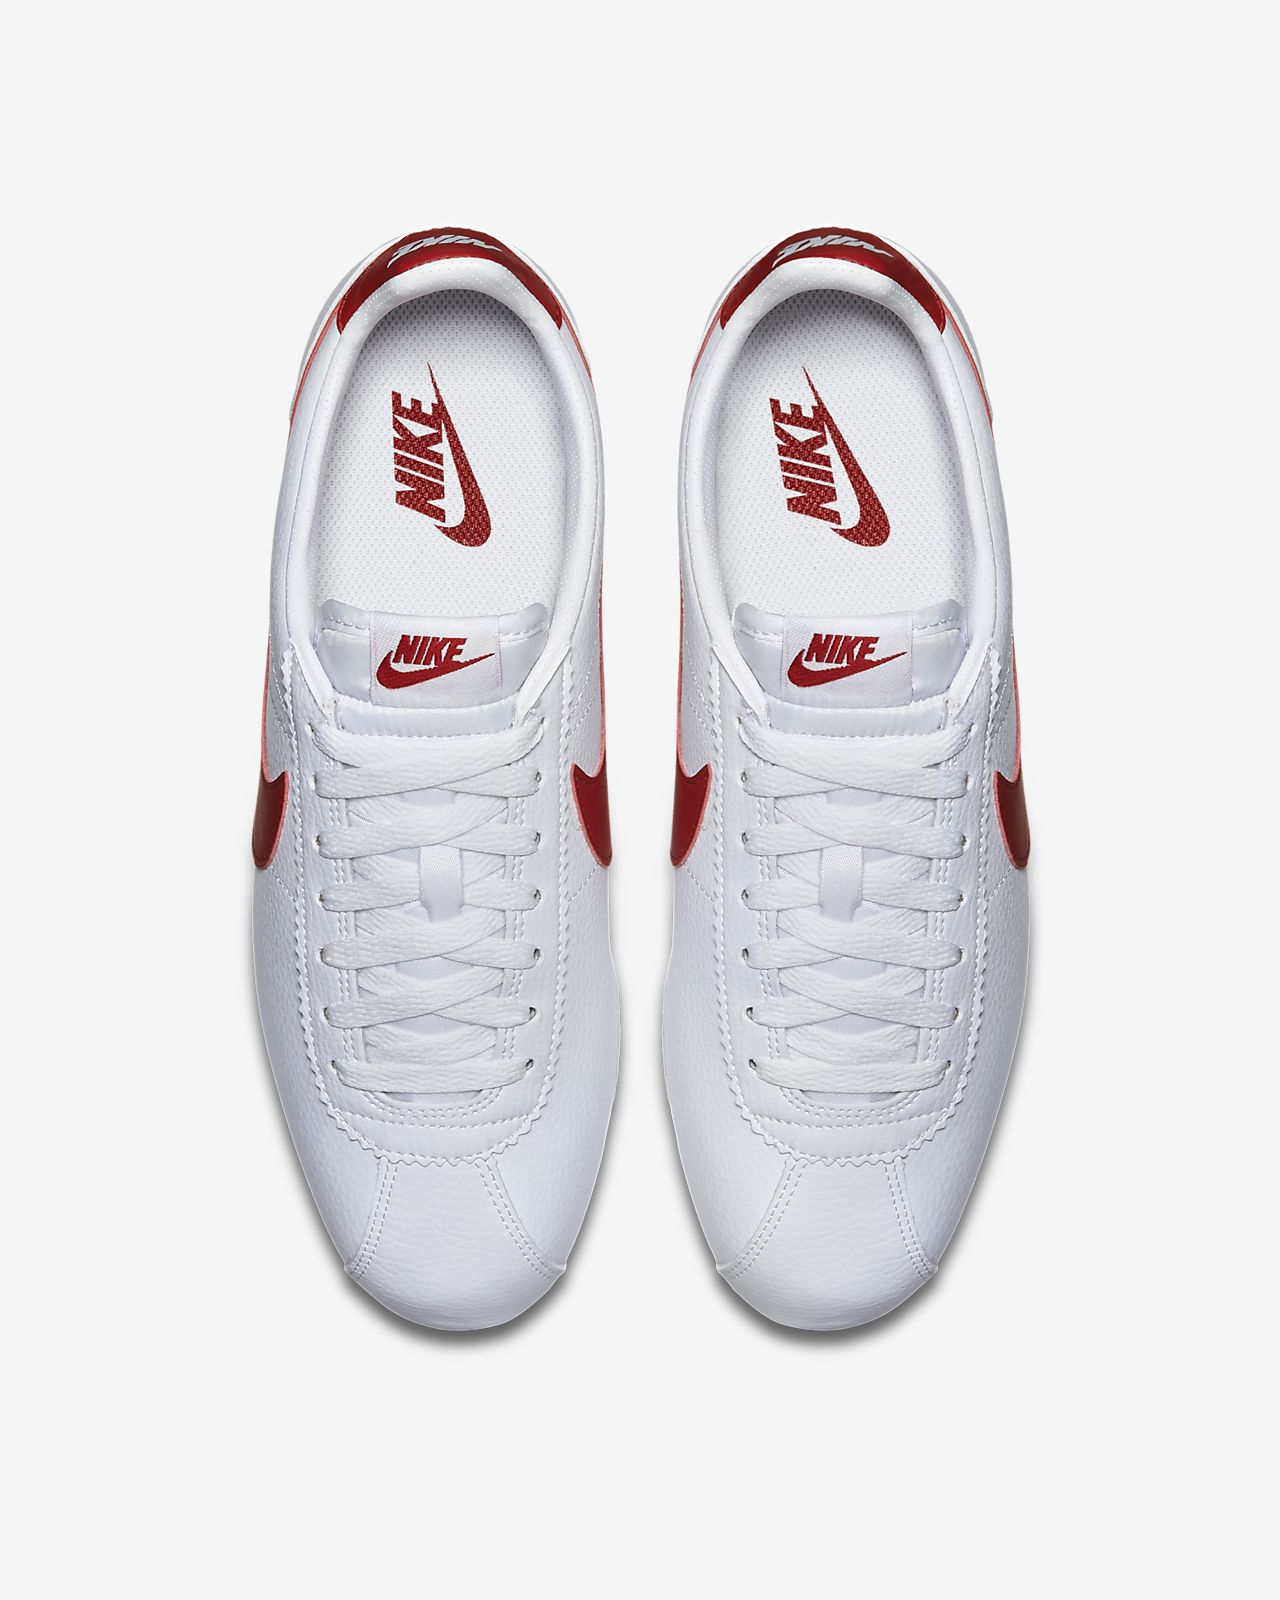 detailed look bd8d4 db4d6 ... Nike Classic Cortez Men s Shoe